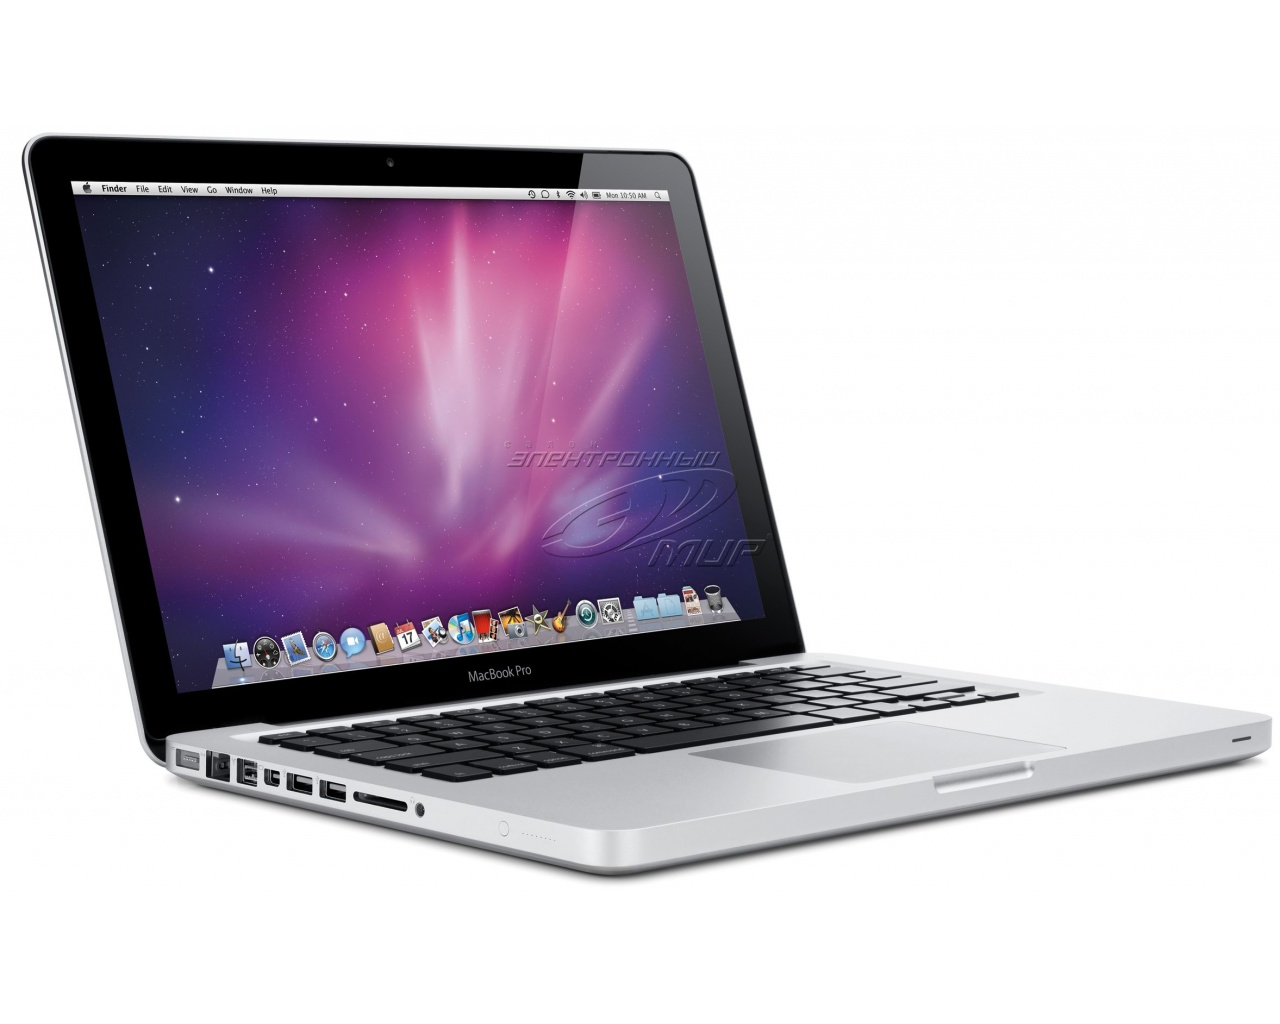 Apple Macbook Pro A1286 Core i7 Laptop